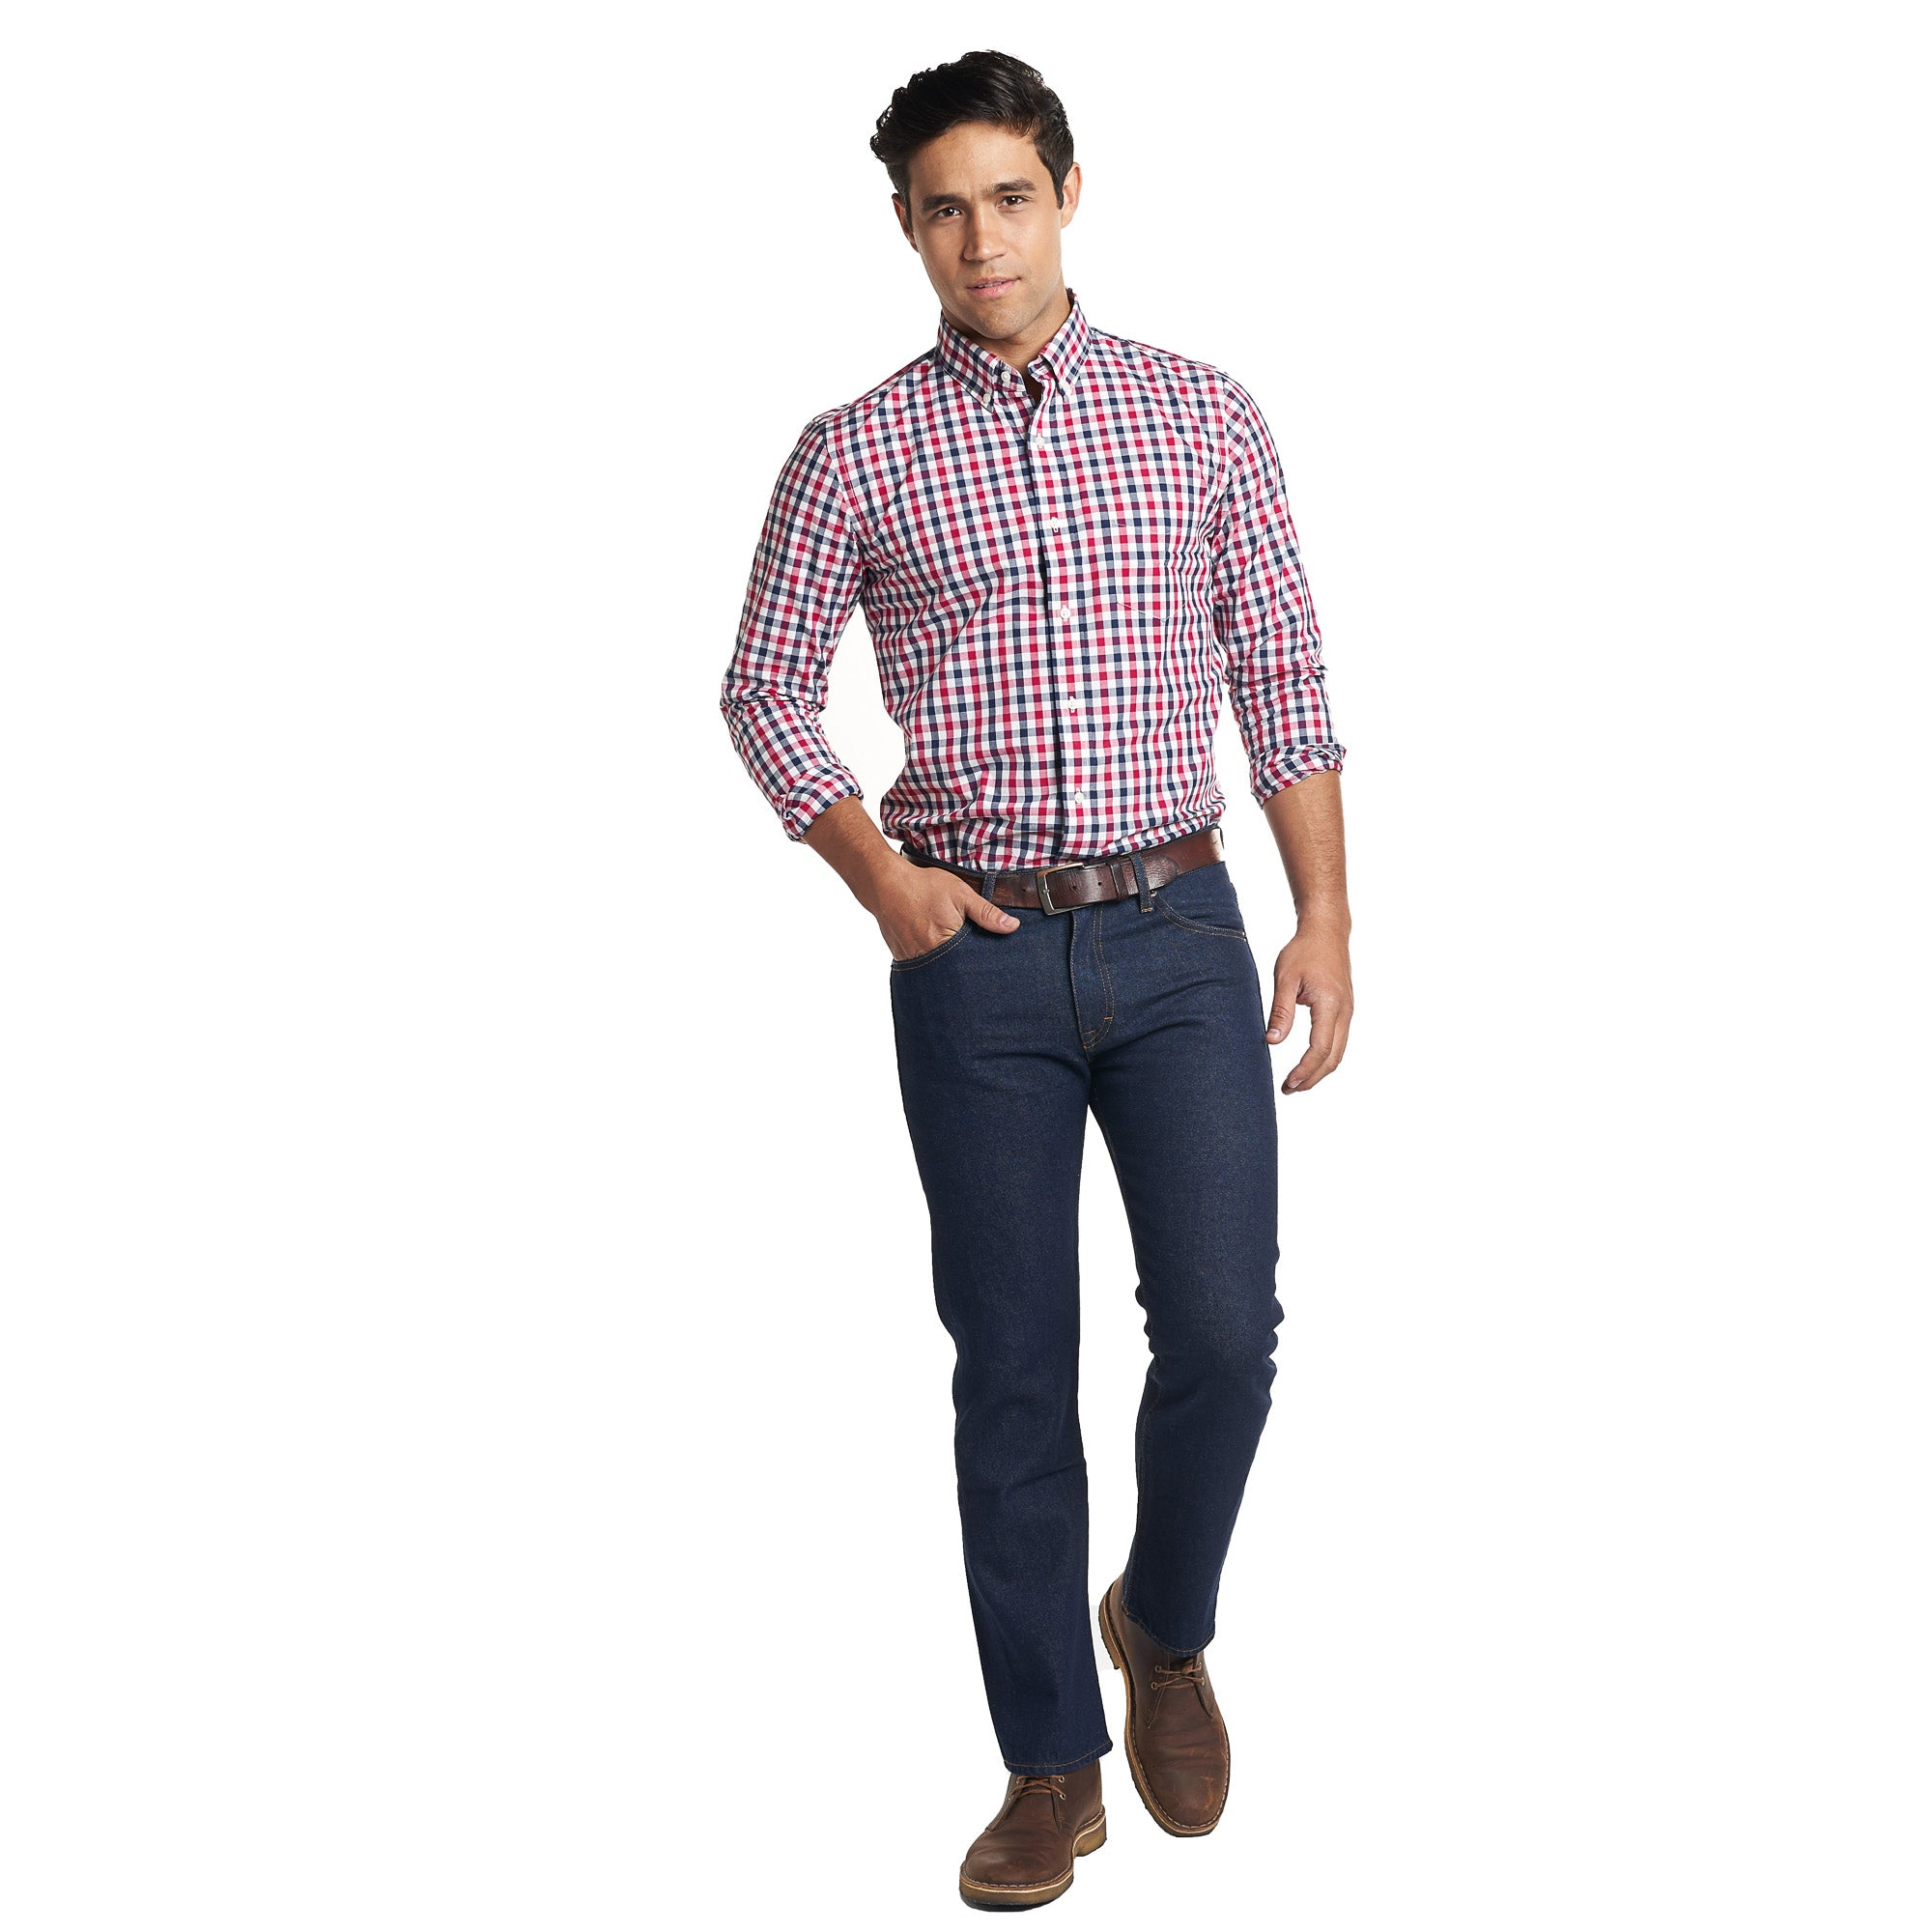 Everyday Shirts Standard Fit - Navy Red Gingham